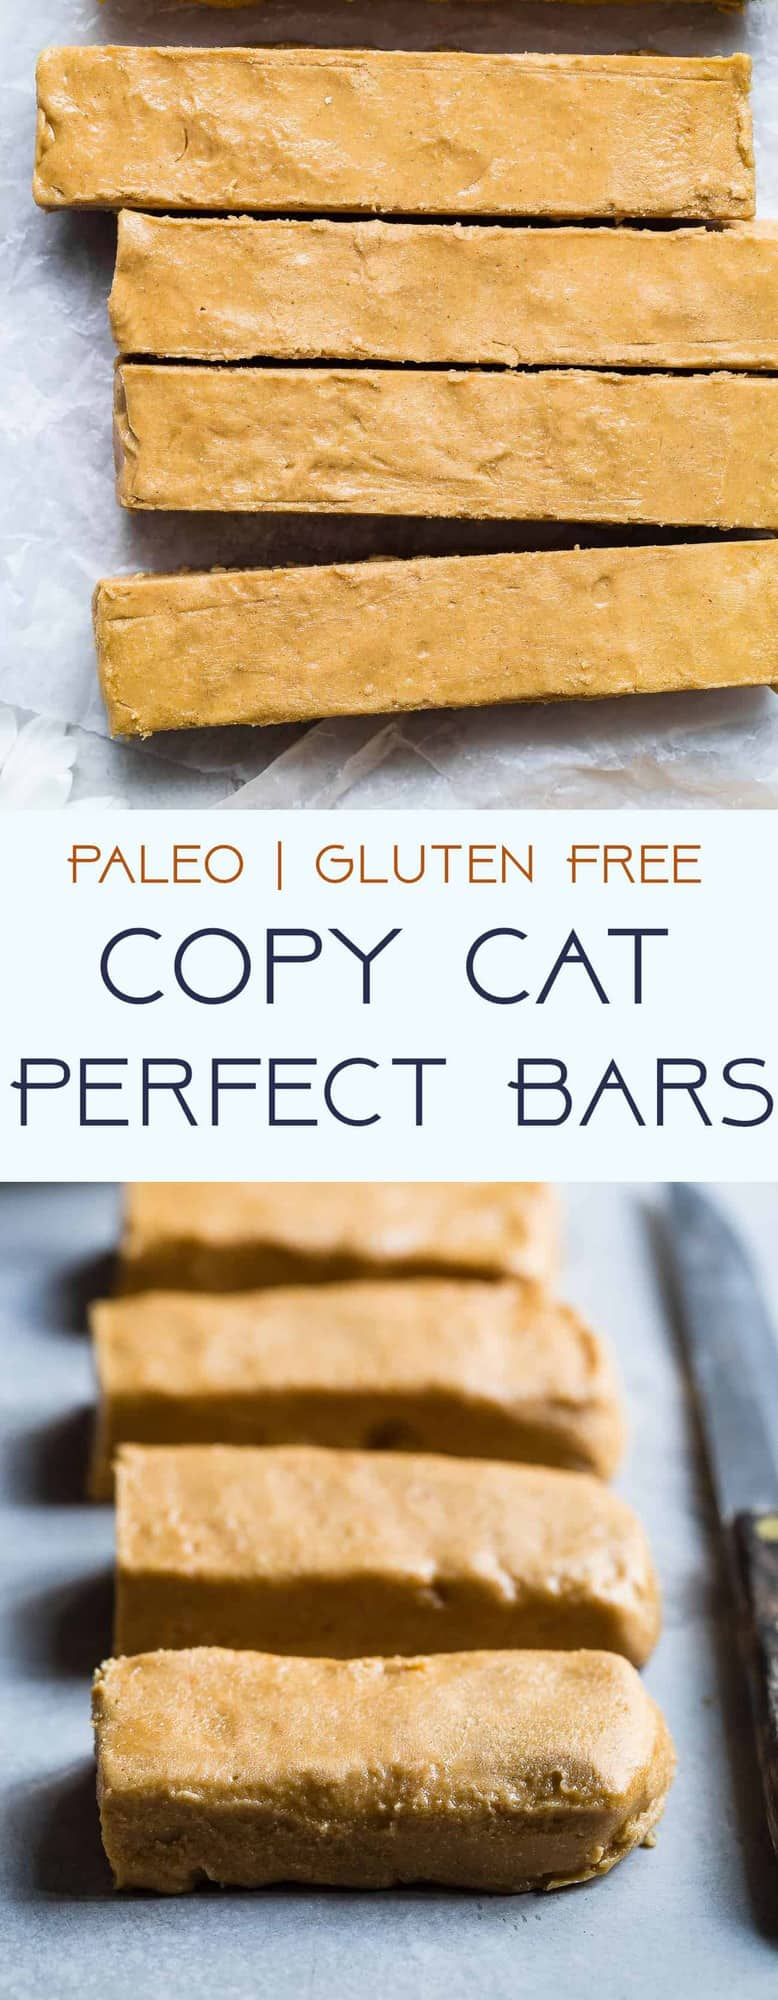 Homemade Perfect Bars - This homemade Perfect Bar Recipe tastes exactly like the store bought version, and is only 5 ingredients and so easy to make! Gluten free and healthy with a paleo option! | #Foodfaithfitness | #Glutenfree #Paleo #Healthy #Dairyfree #Snacks